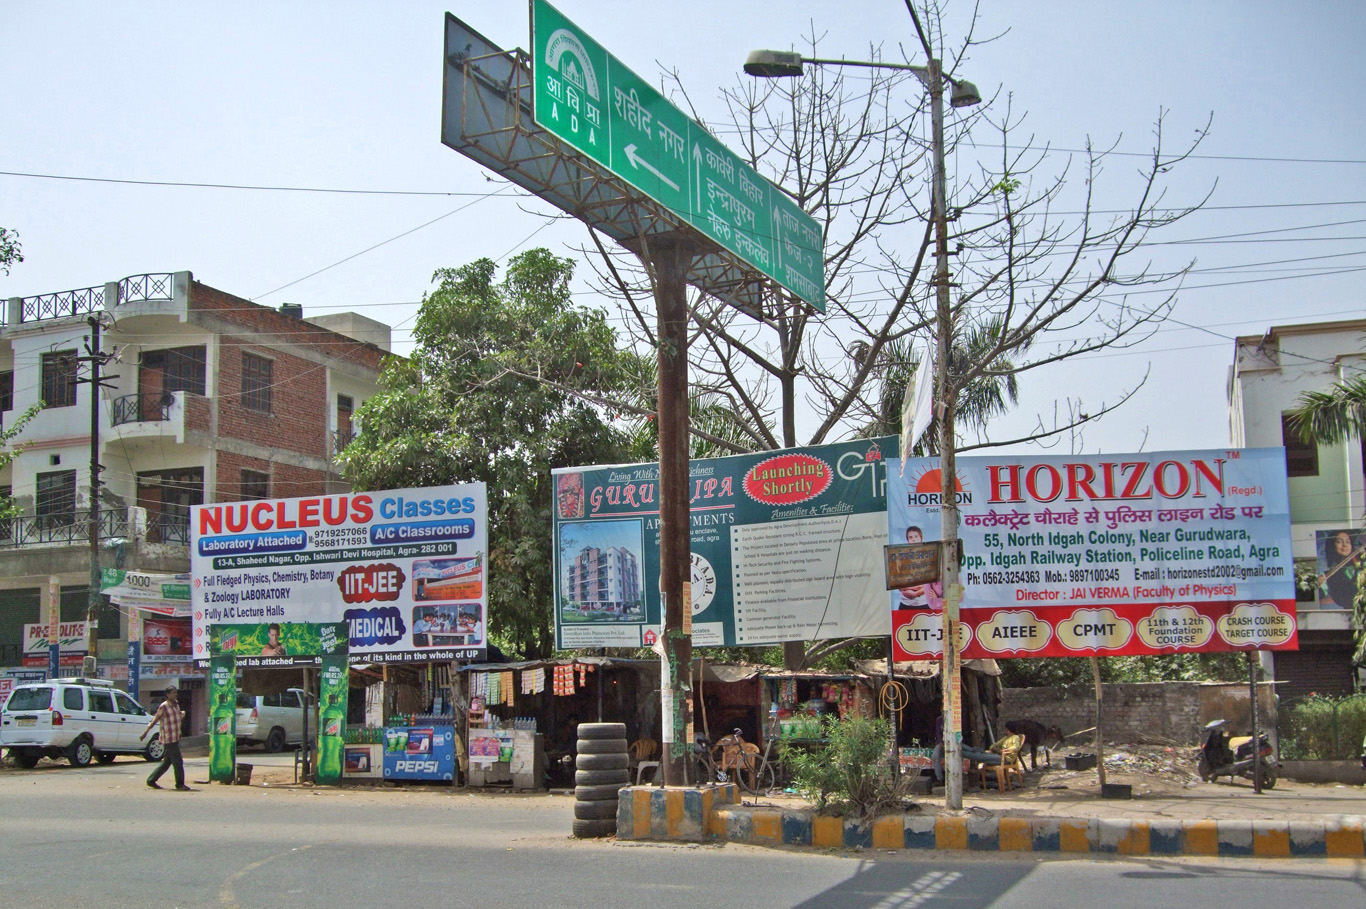 Road  full of ads in Agra, view from our hotel